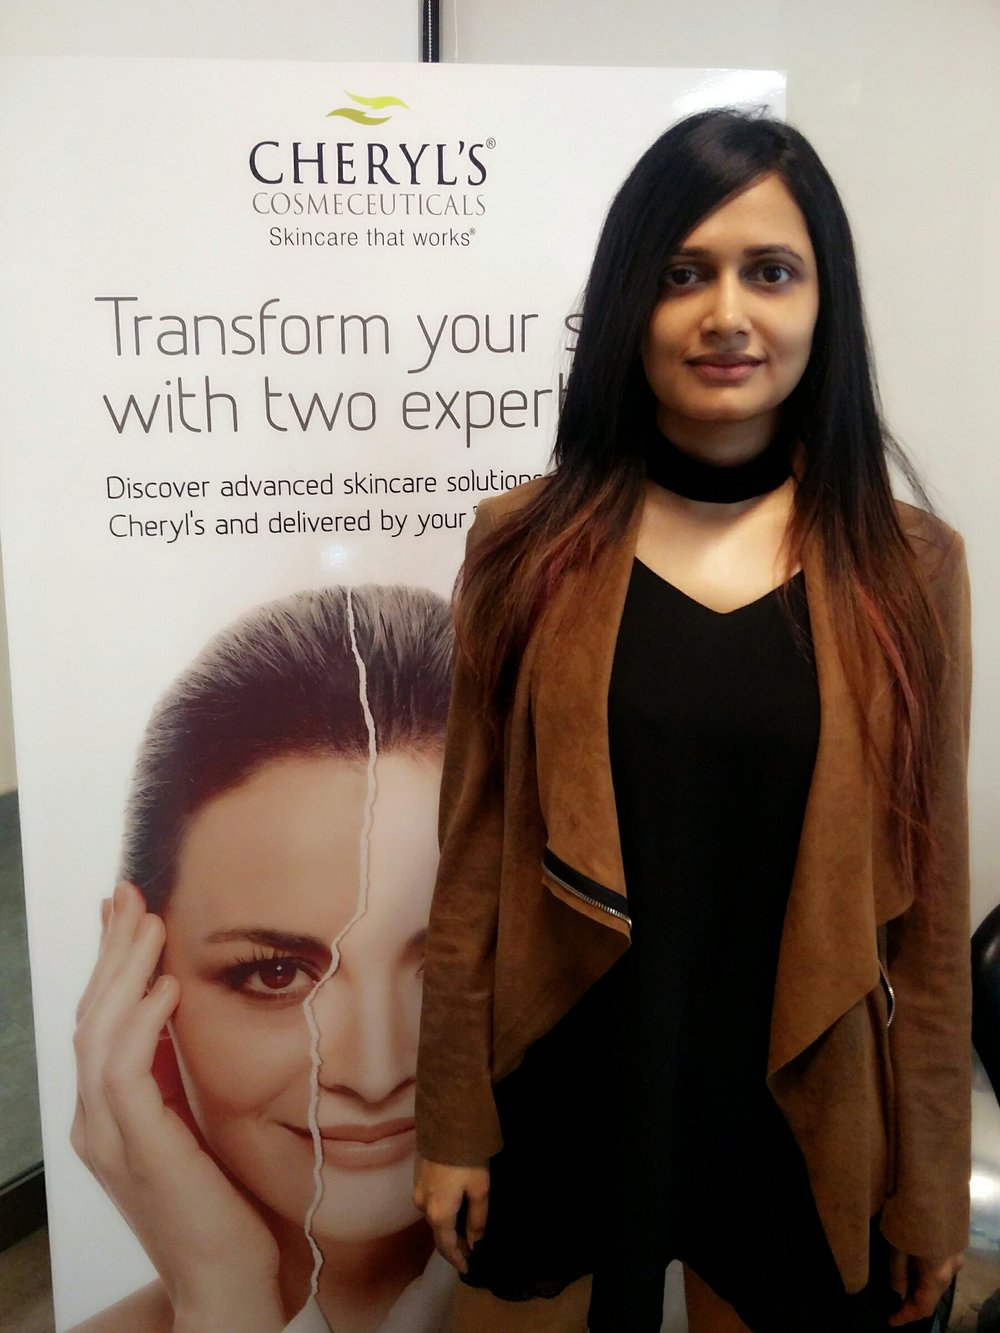 The-Chic-Armoire-by-Nidhi-Kunder-Cheryls-Cosmeceuticals-9